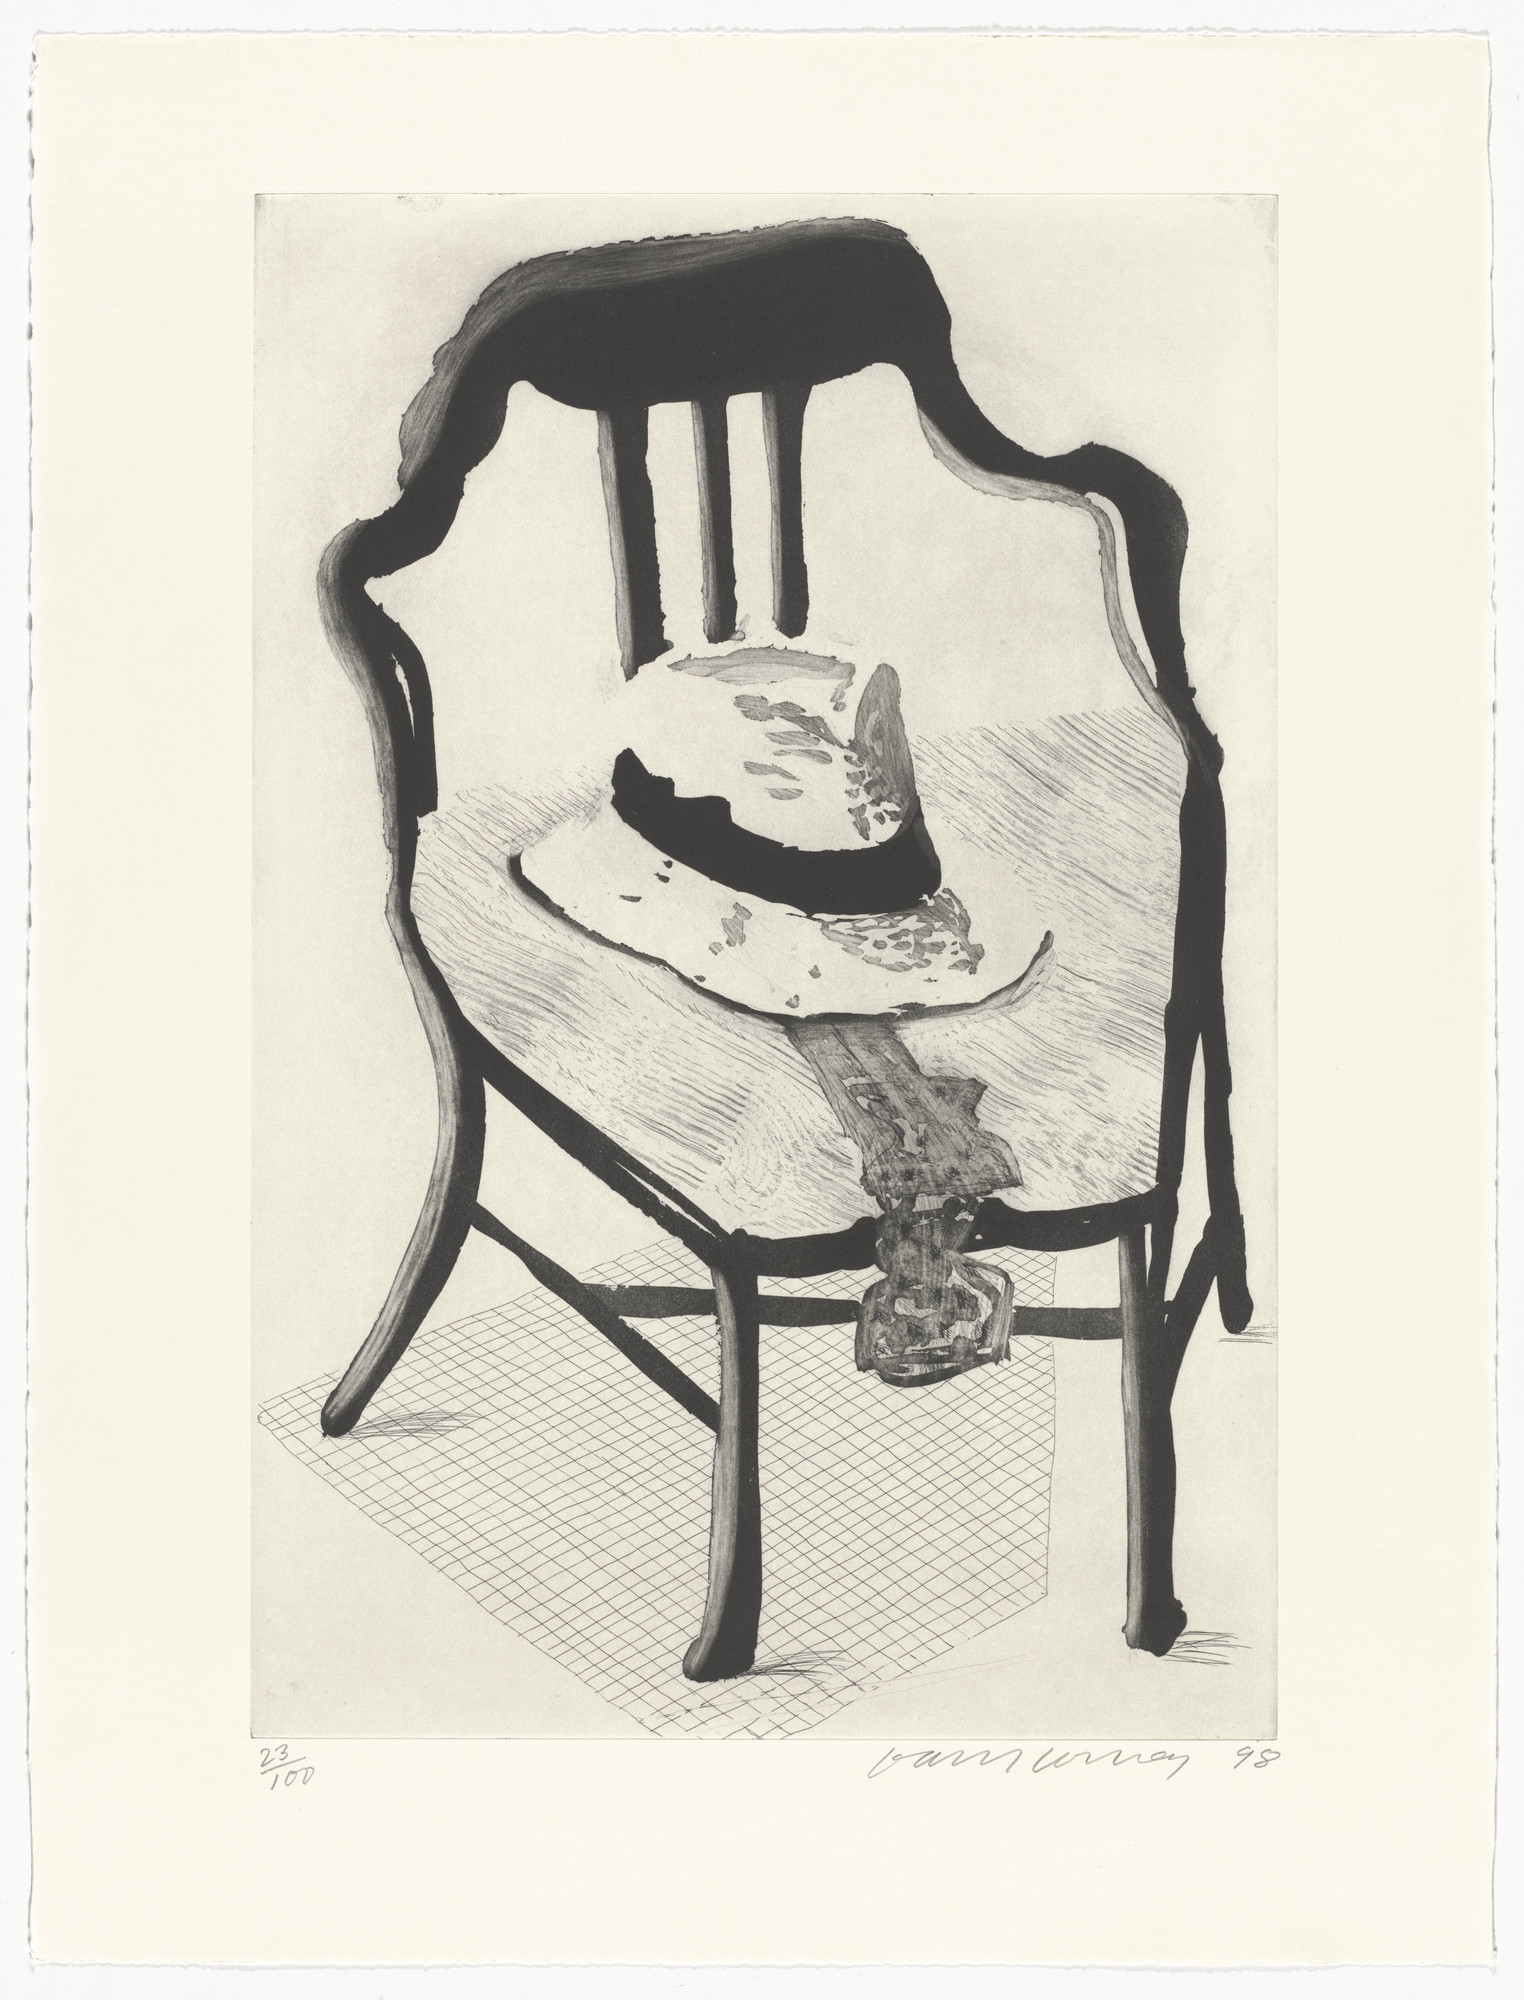 David Hockney. Panama Hat with a Bow Tie on a Chair from The Geldzahler Portfolio. 1998